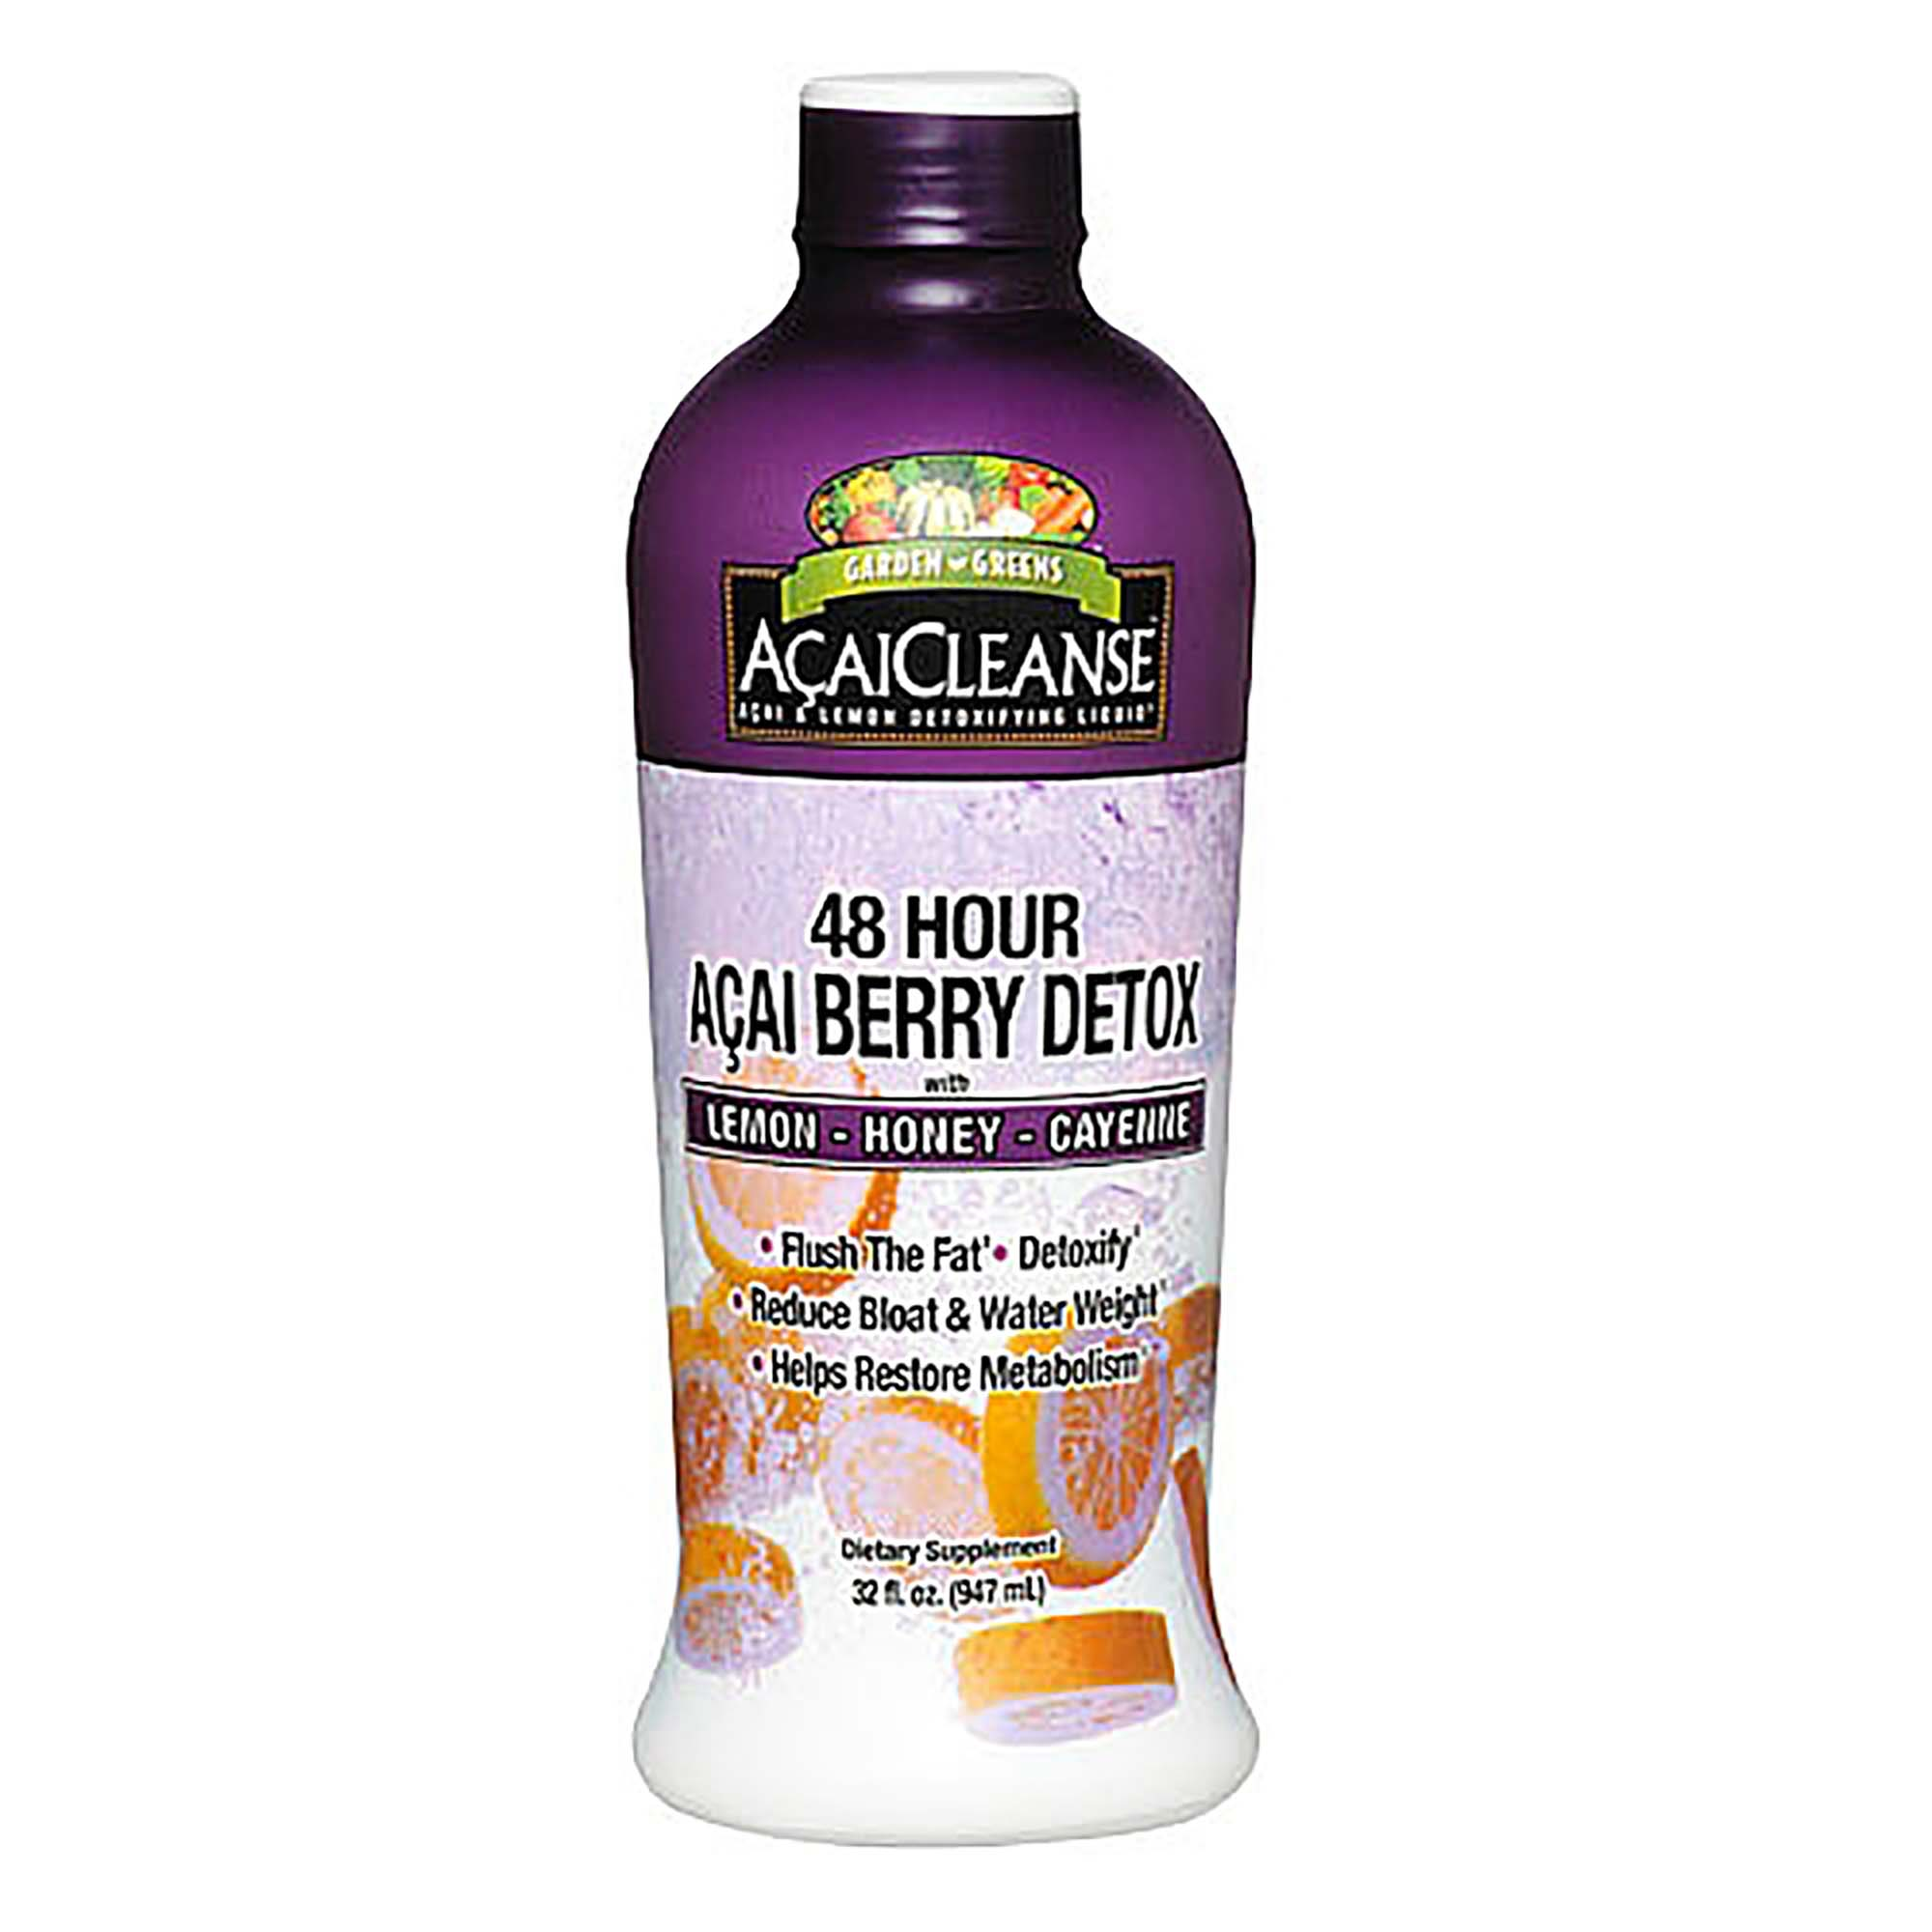 AaCleanse 48 Hour Aa Berry Detox